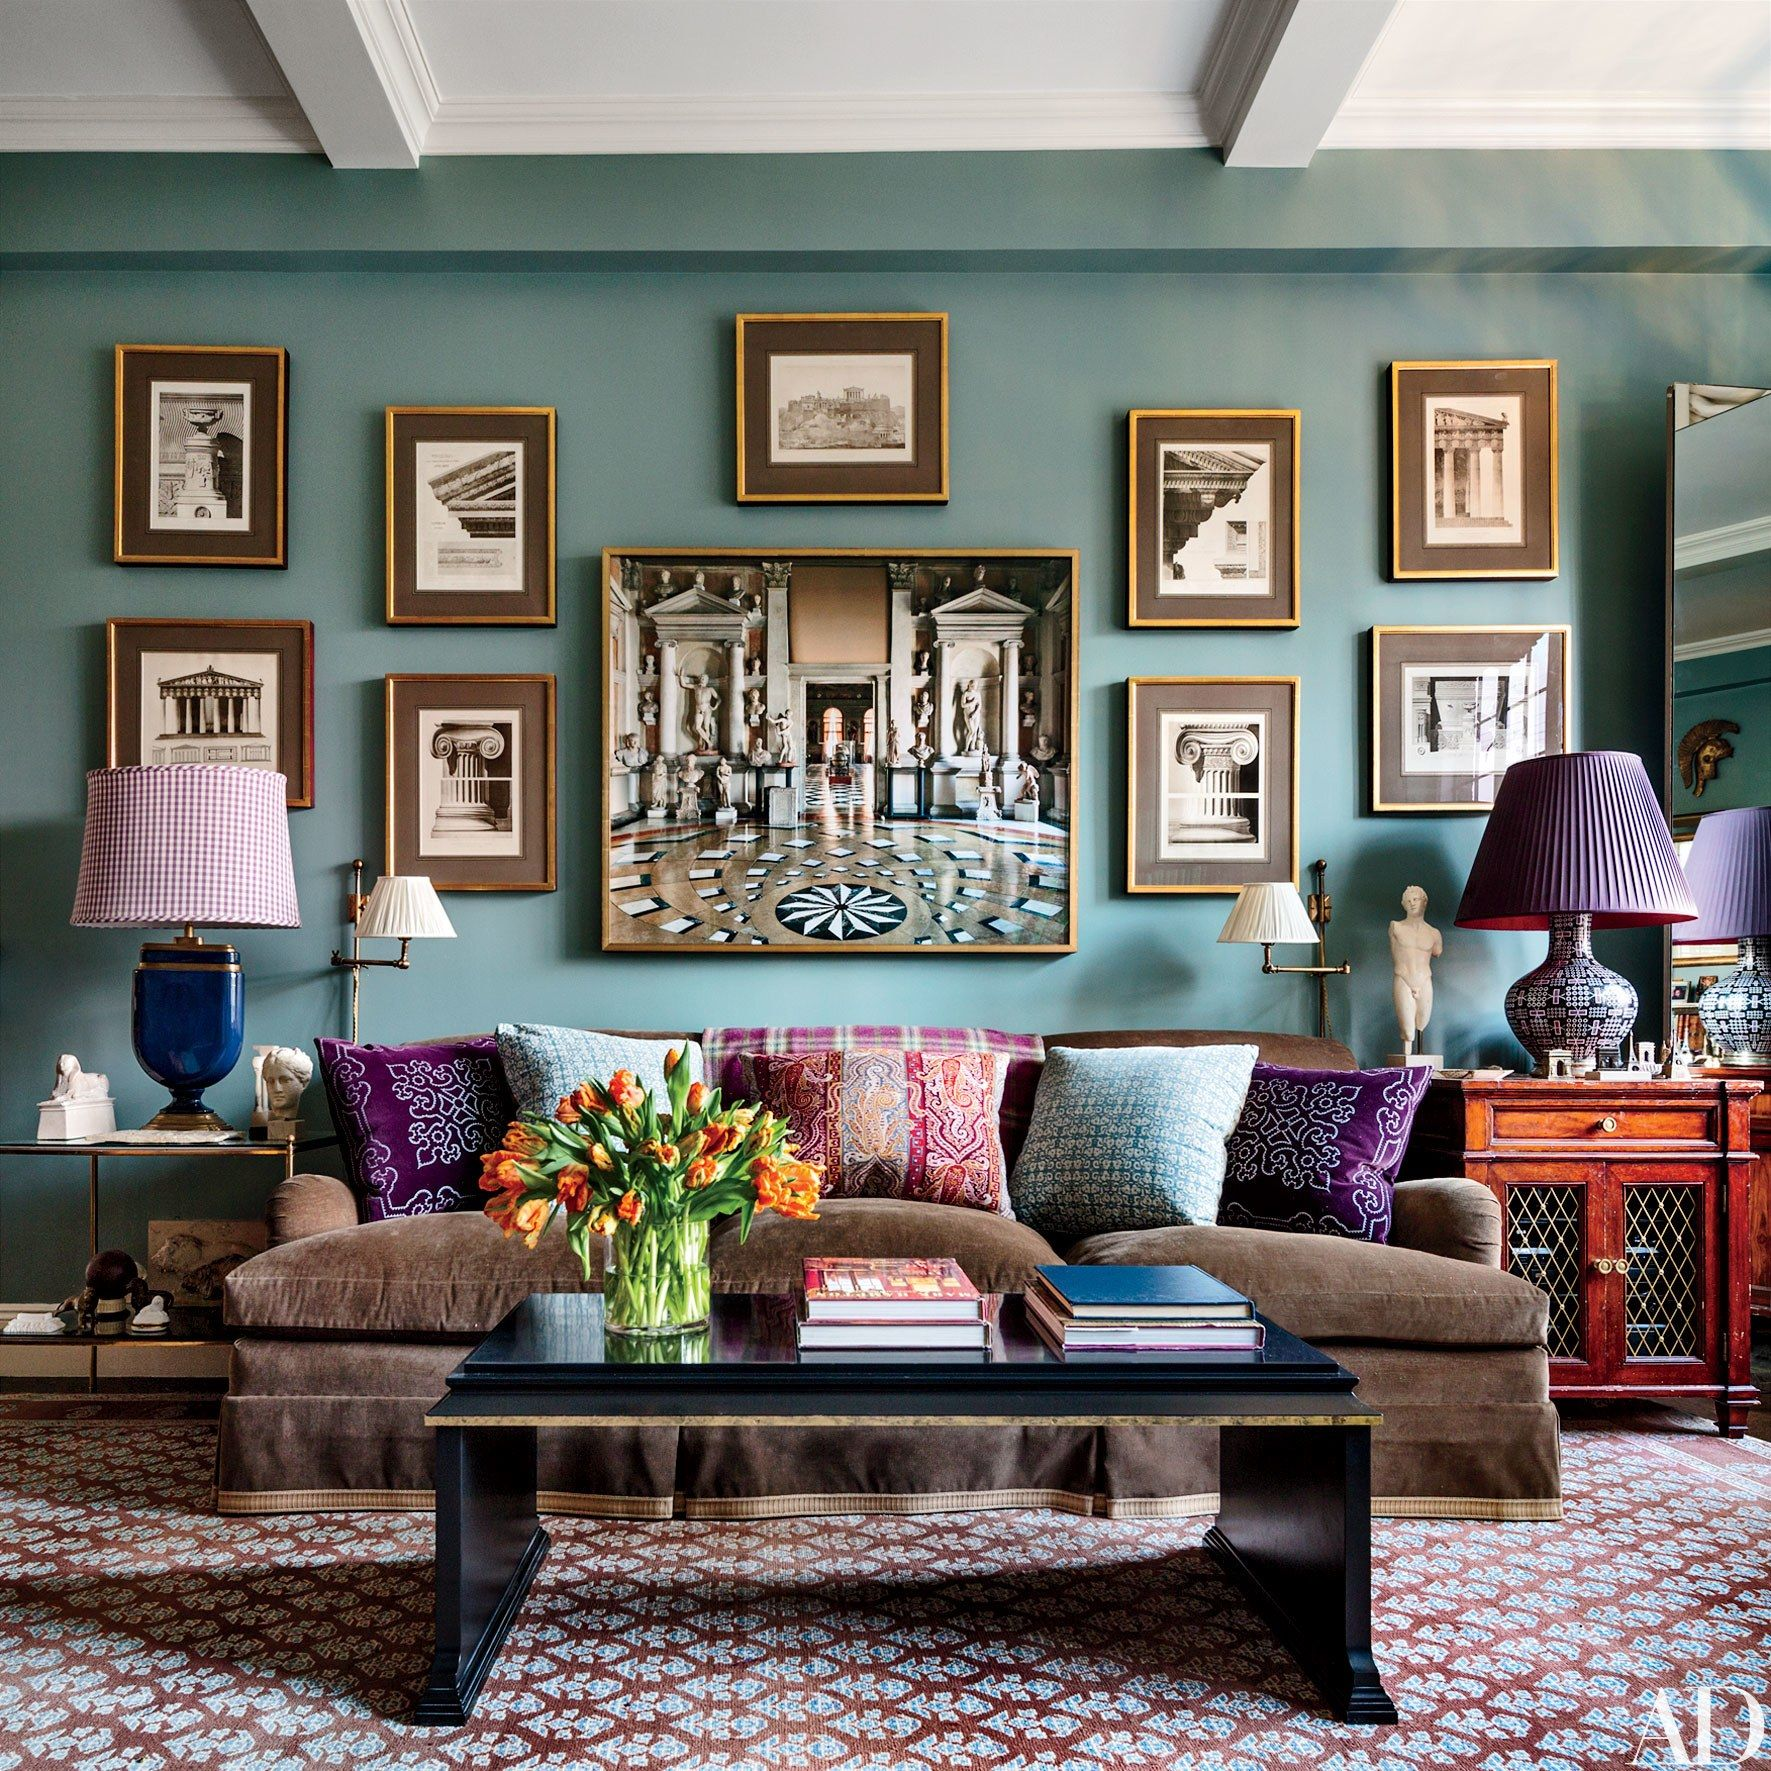 Hampton Greene Apartments: These Blue-Green Rooms Are The Ultimate Serene Spaces In